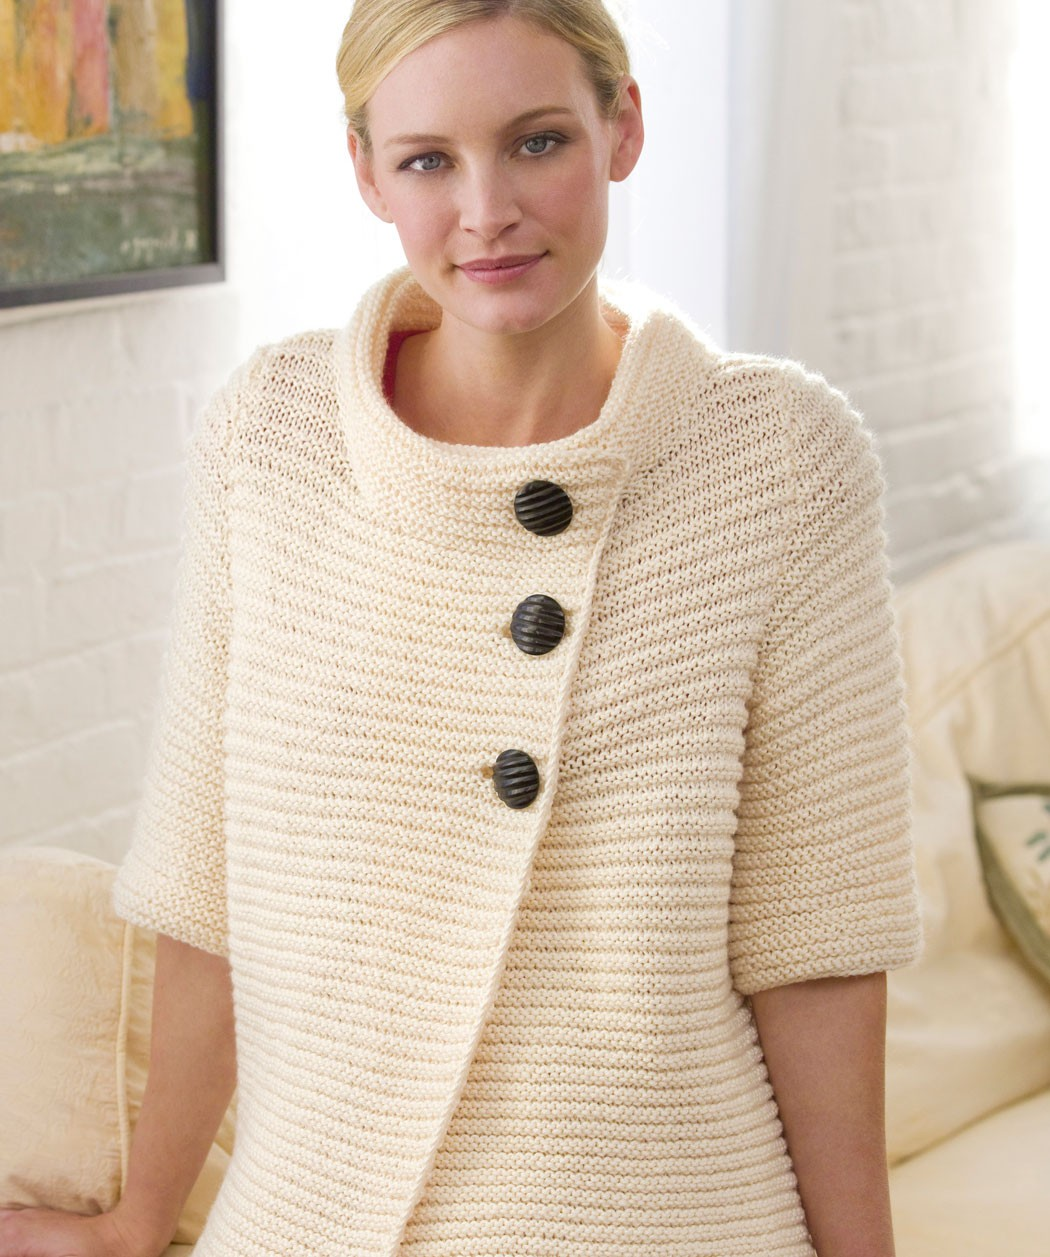 Sweater Knitting Patterns Free : Knitted Sweater Patterns for Women A Knitting Blog